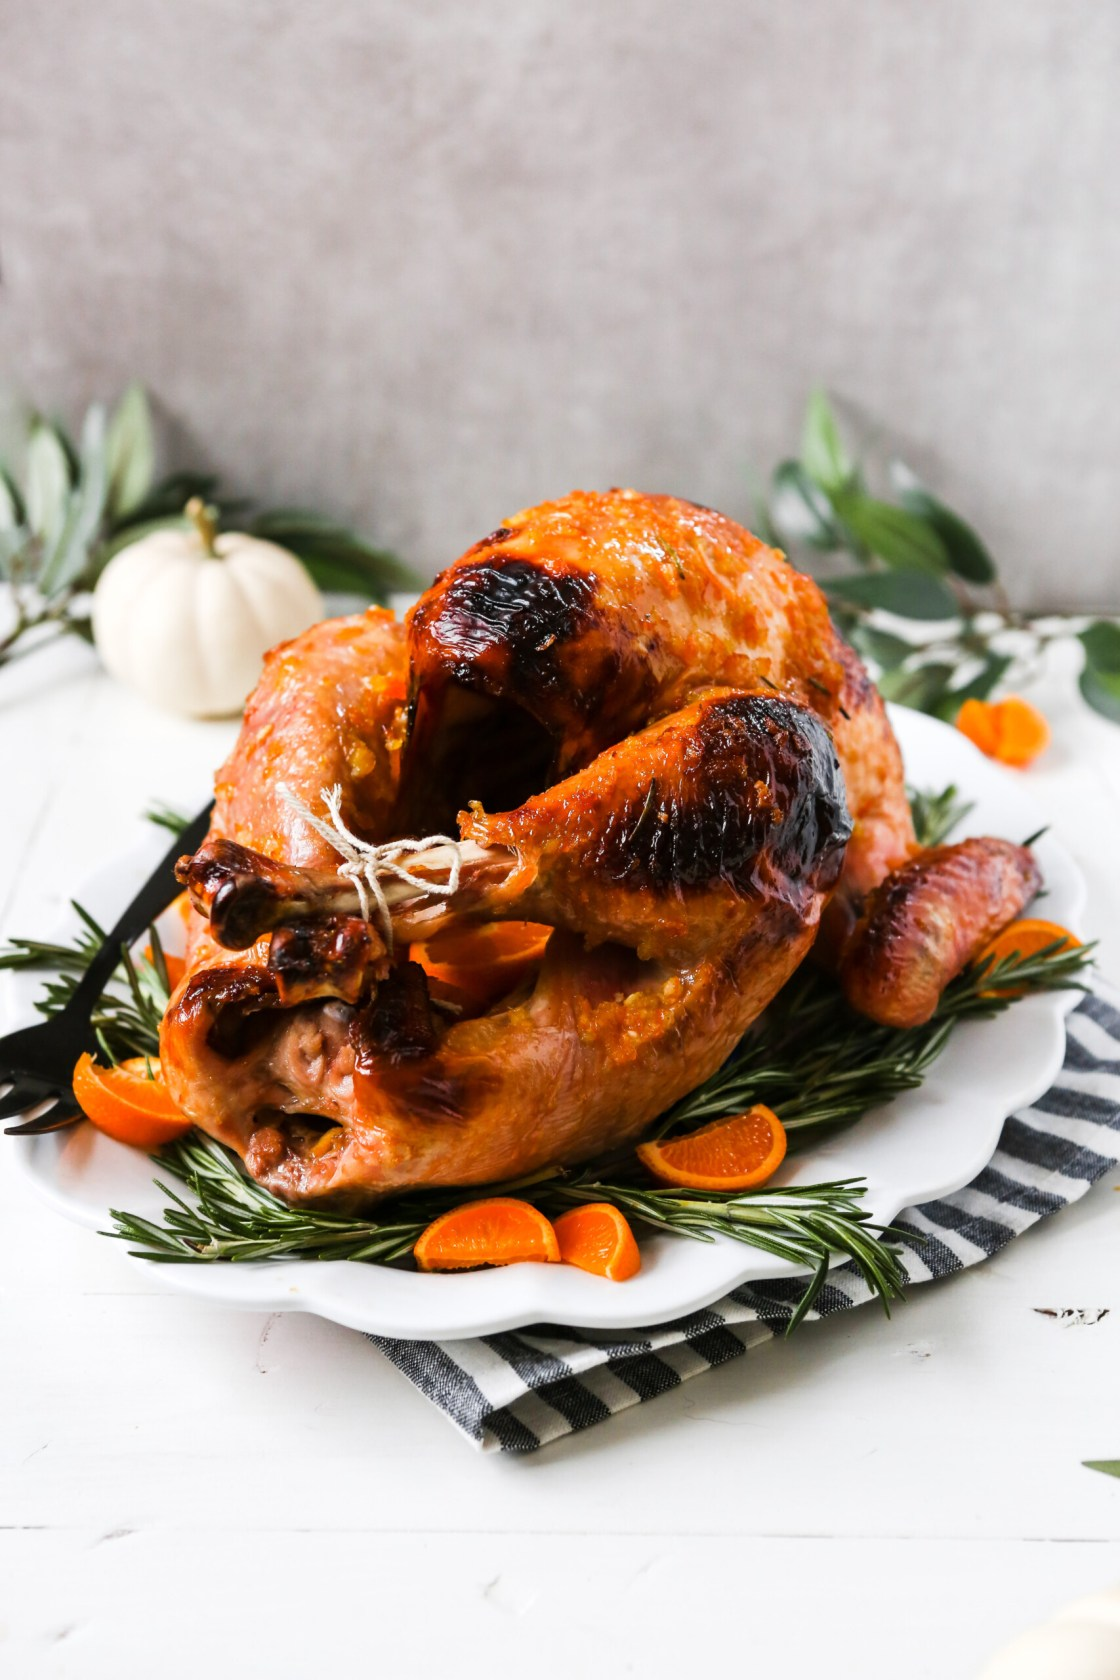 photograph of a whole glazed roast turkey on a large white platter